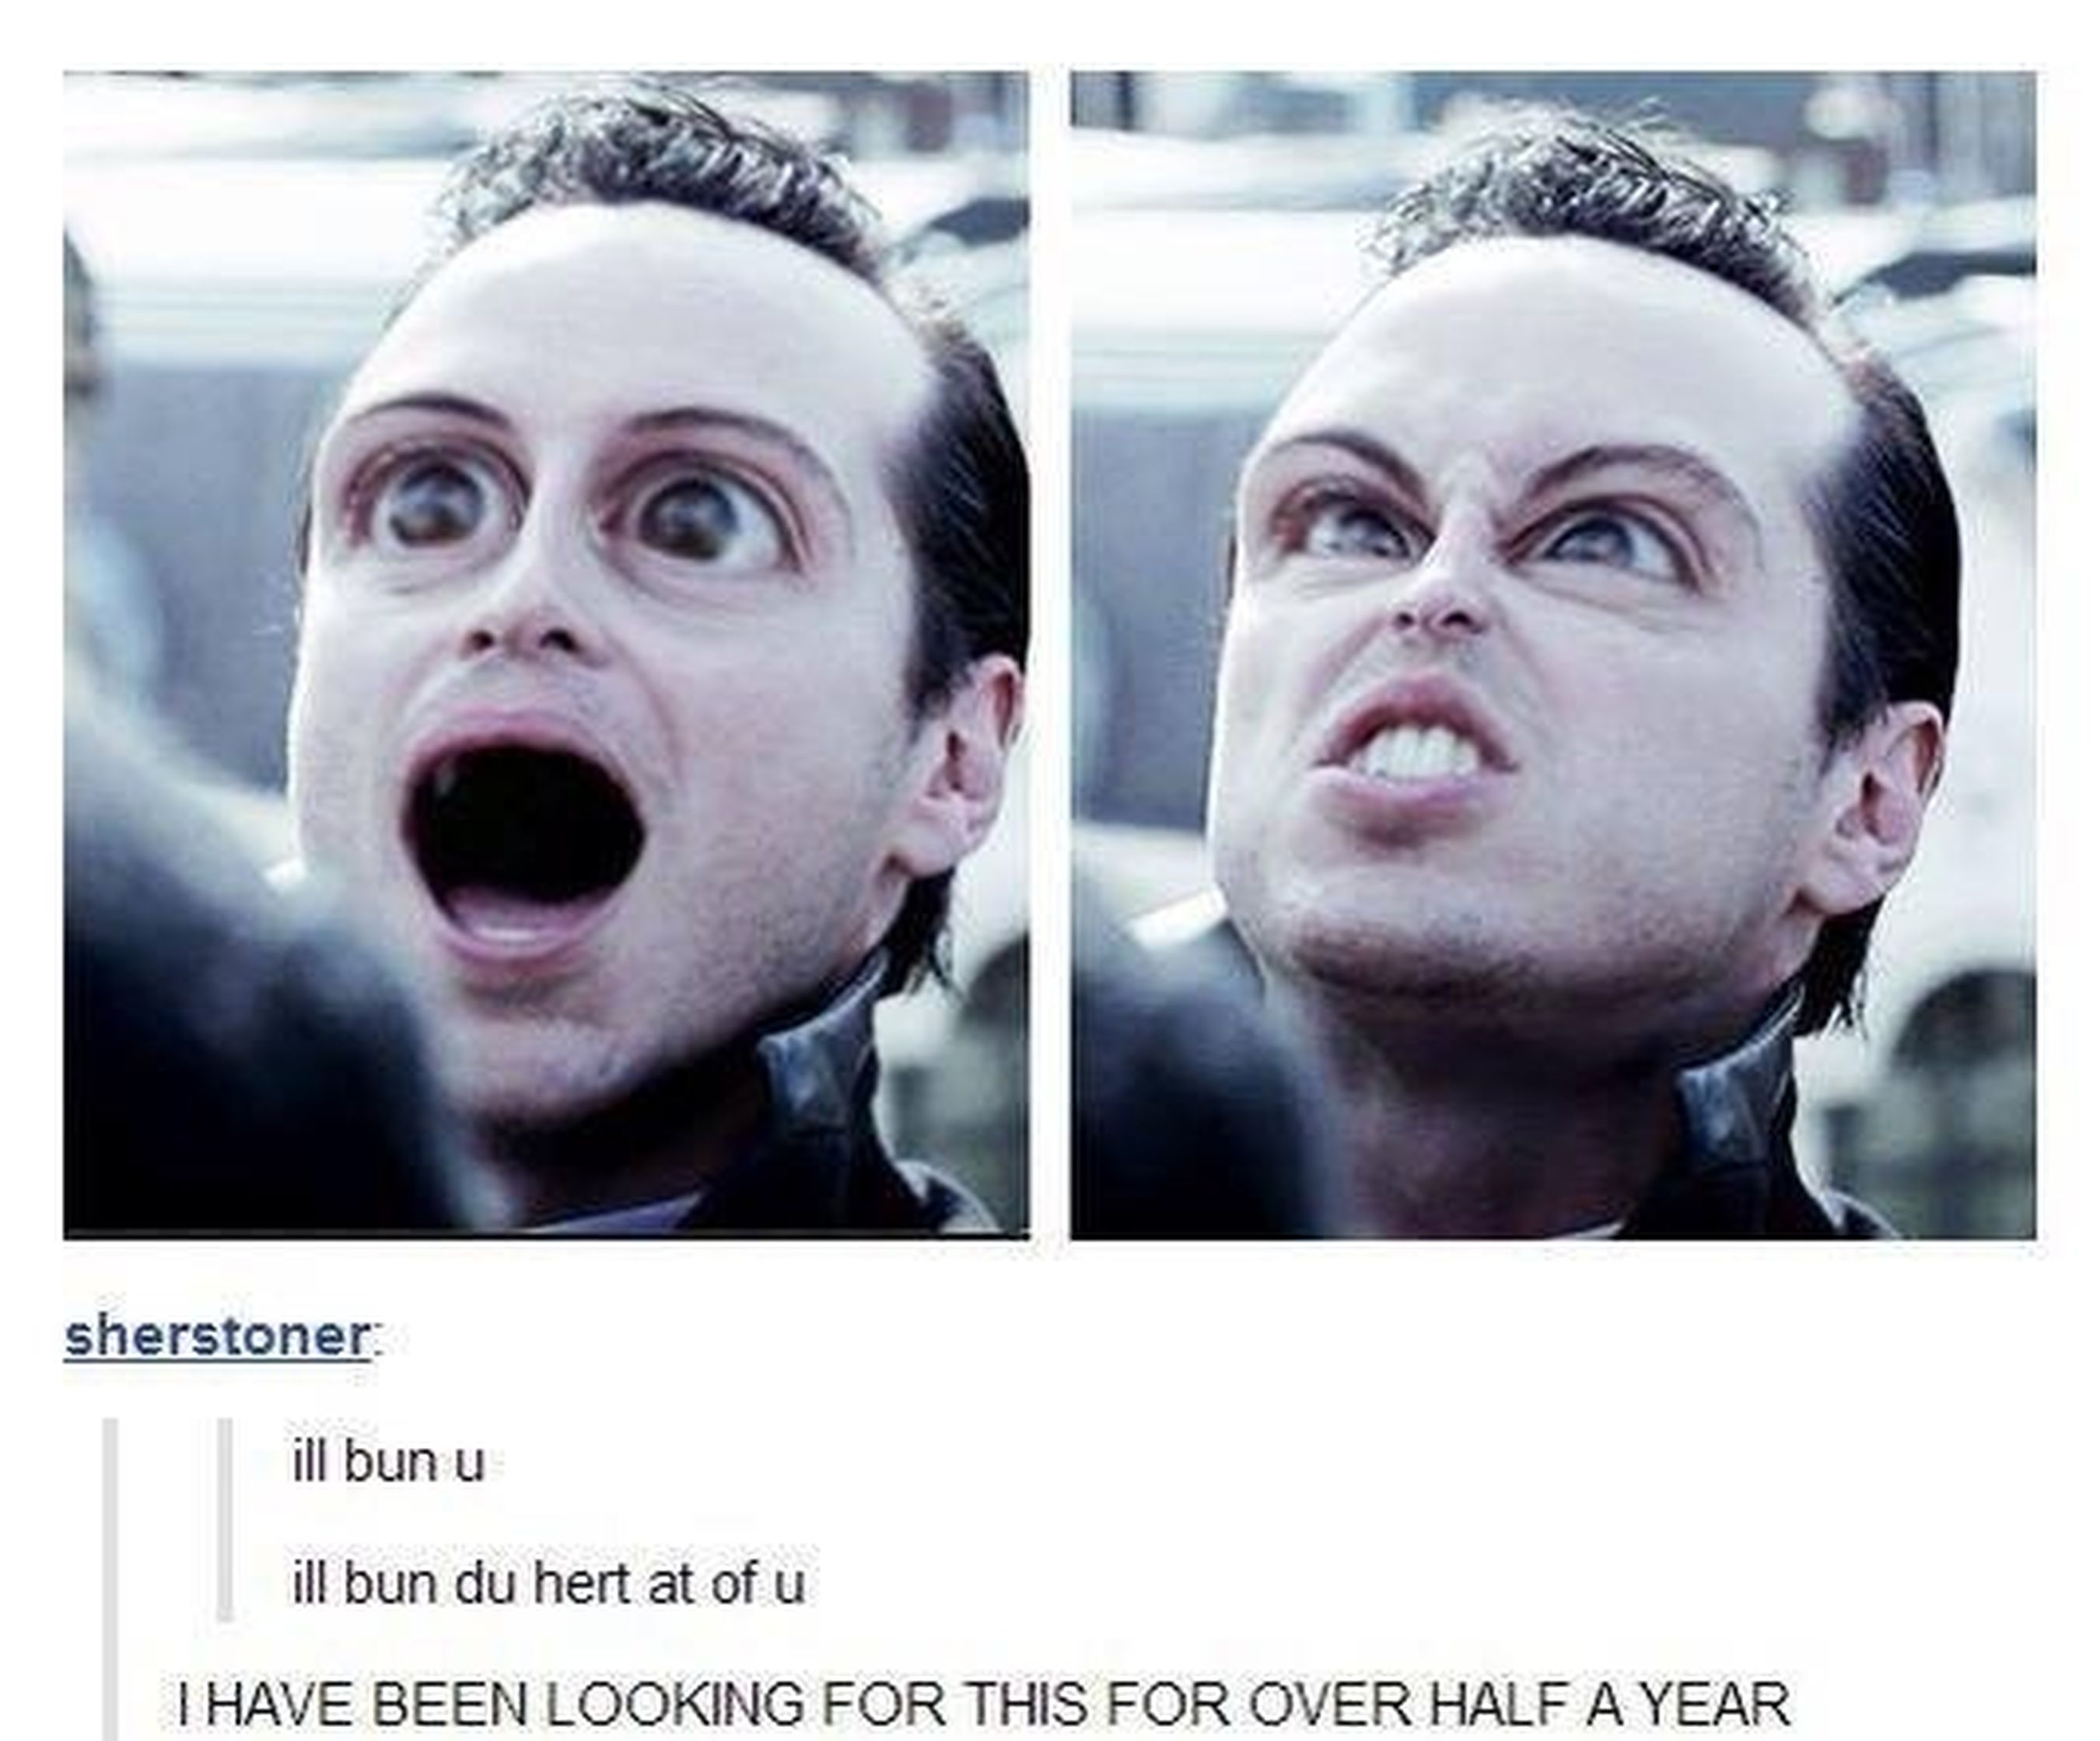 I'LL NEVER GET OVER THIS PICTURE XD Sherlock Moriarty Laughing My Ass Off Unbelieveably Funny